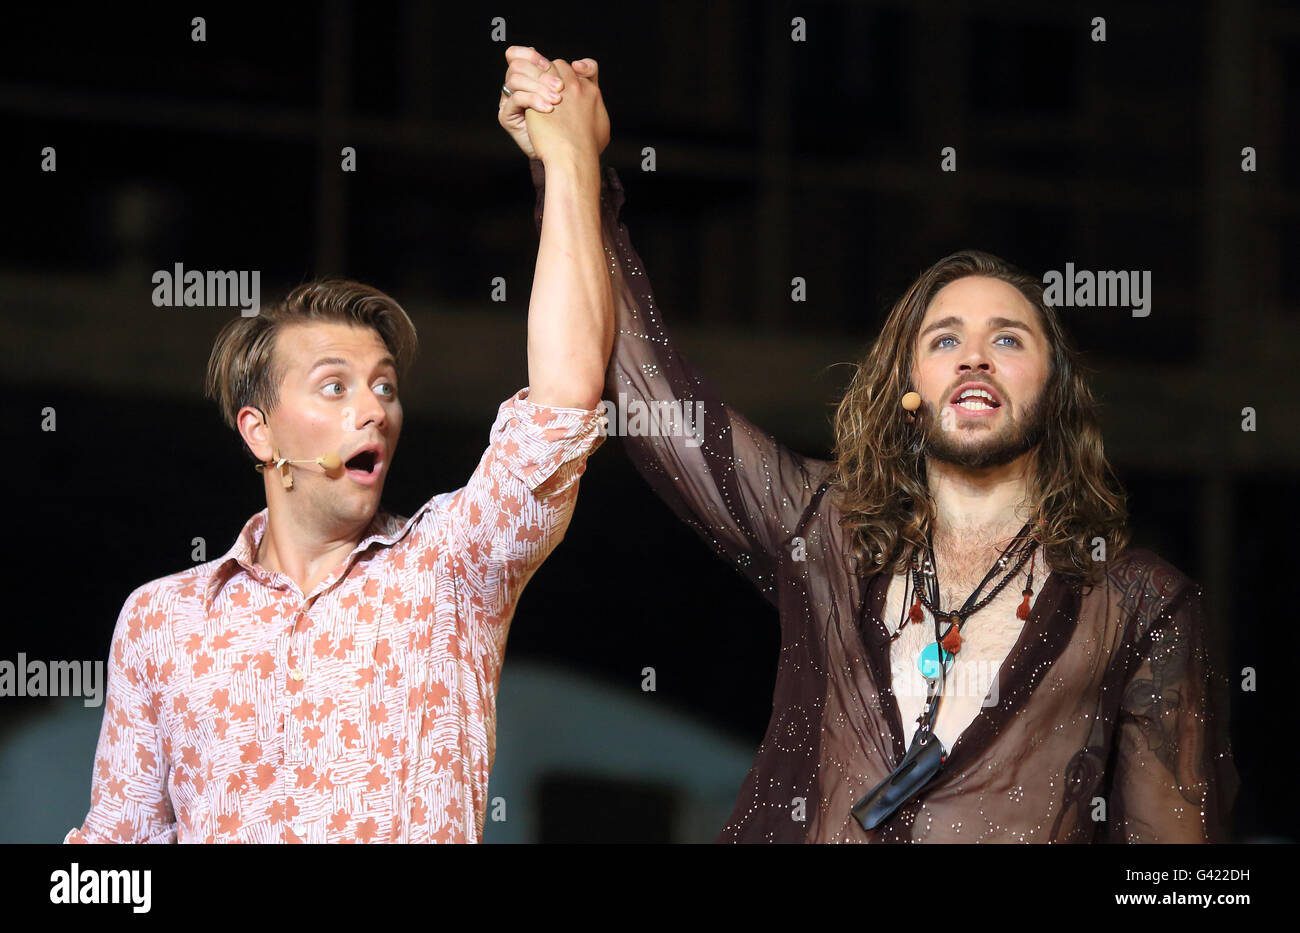 Magdeburg, Germany. 16th June, 2016. Musical artists Jan Rekeszus (l) in the role of Claude and Gil Ofarim as Berger - Stock Image